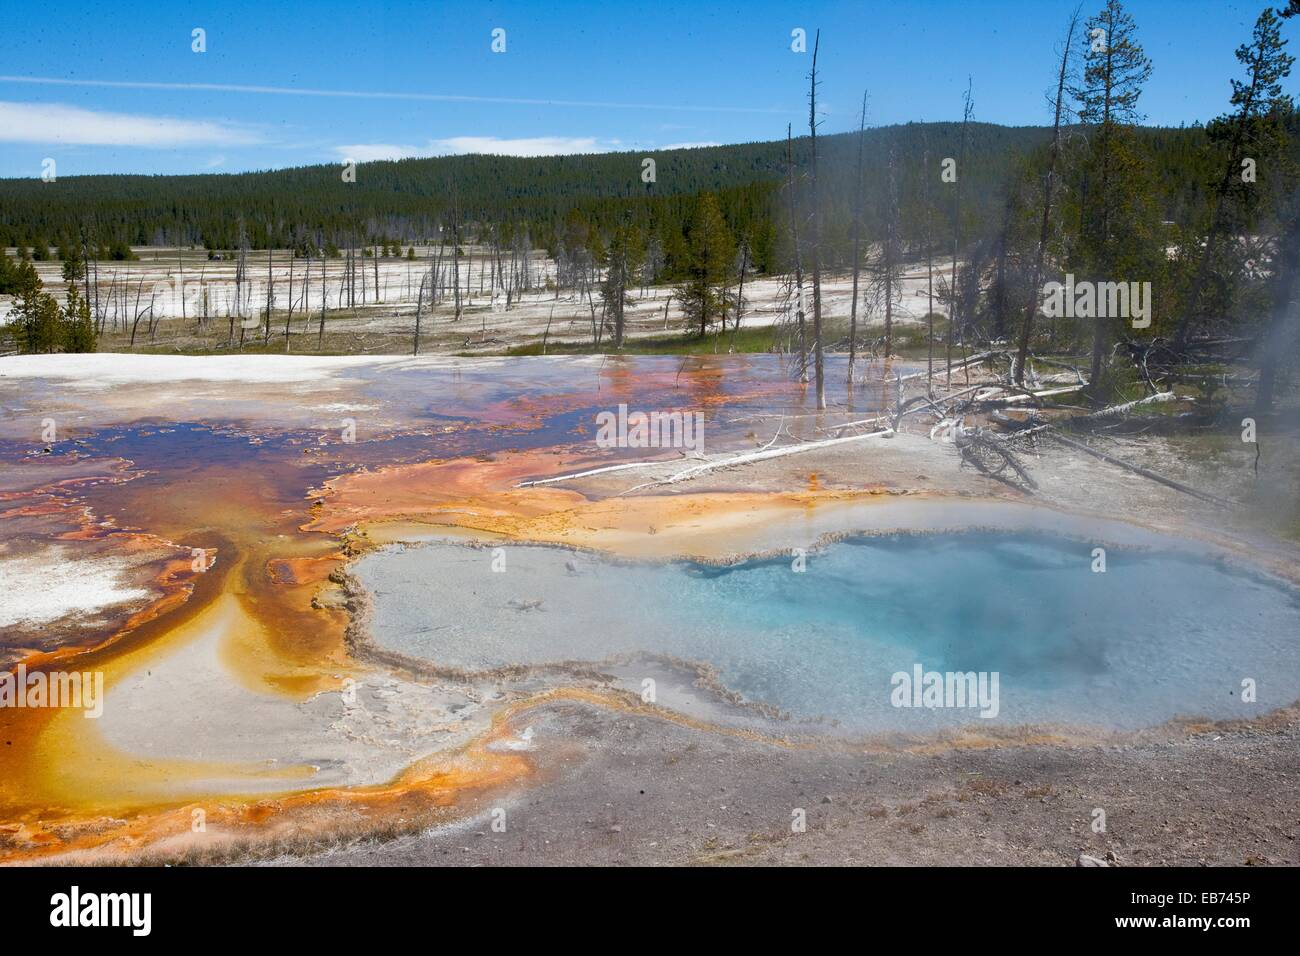 clear hot pool of water with orange calcium deposits in Yellowstone ...